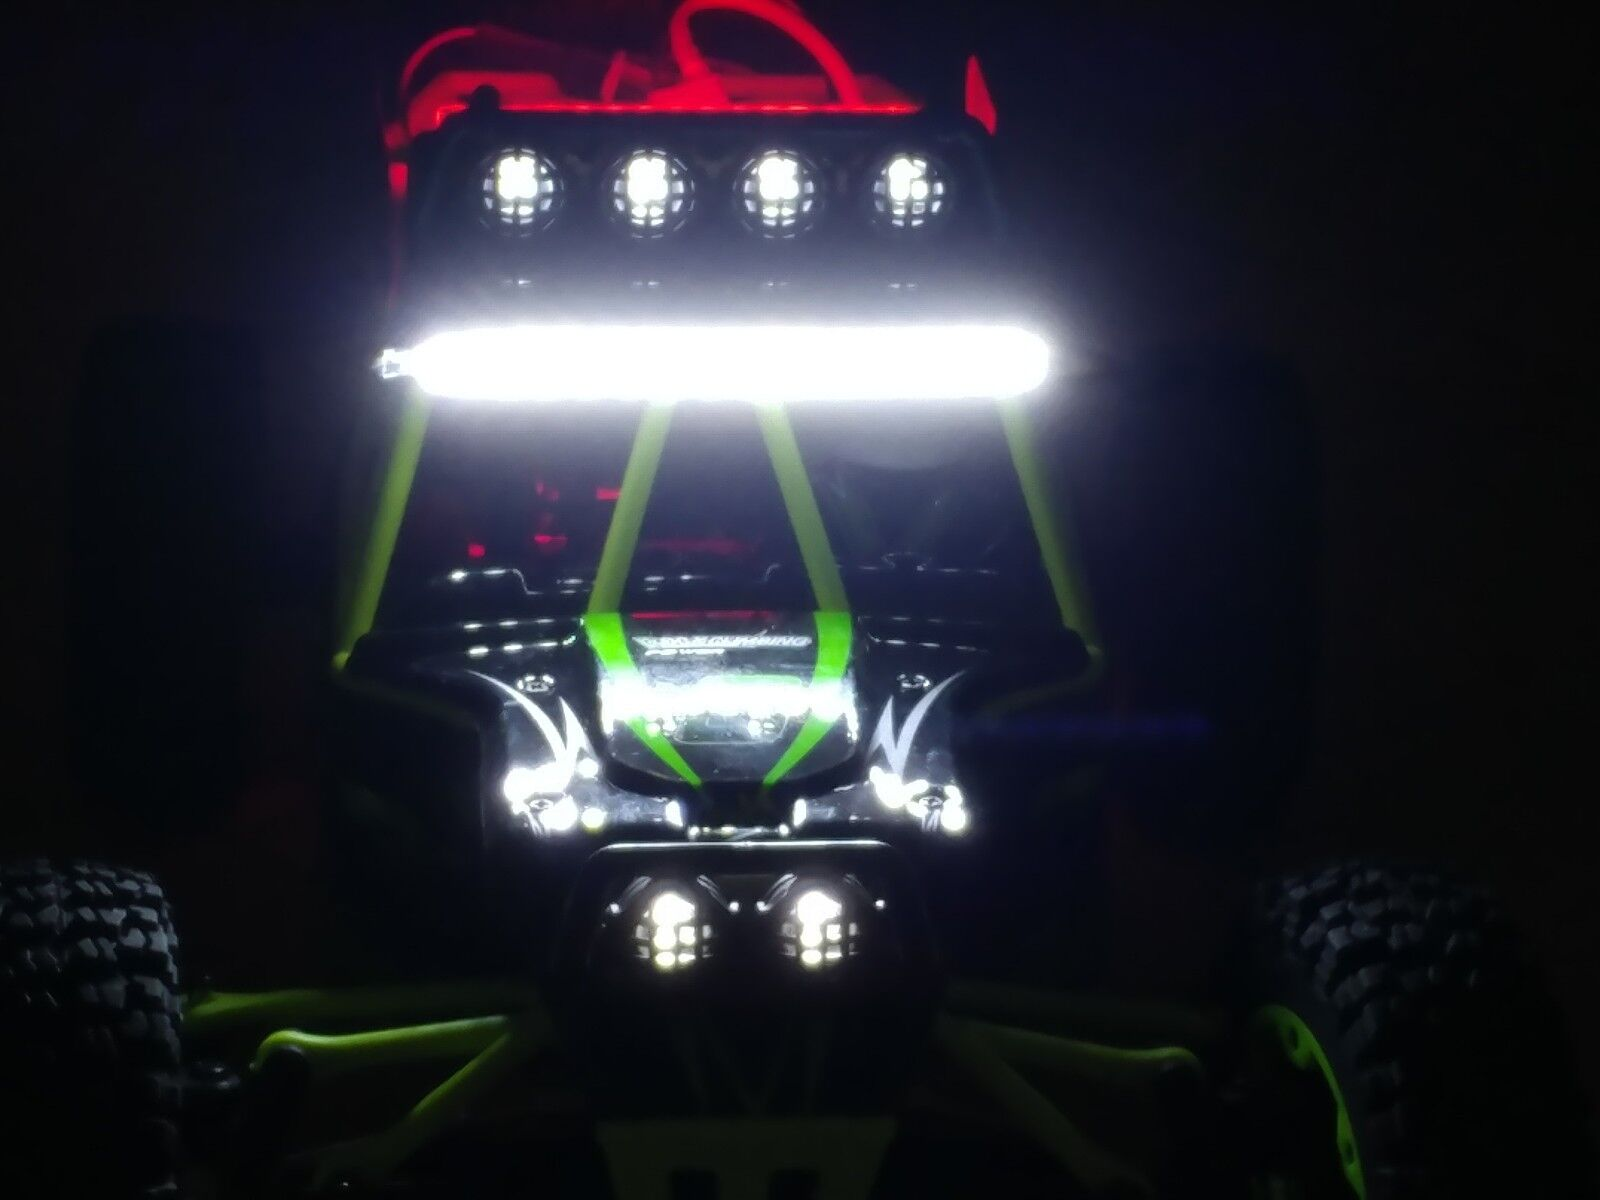 Arrive before Xmas. Wltoys 12428 RC 4WD racer w/front & rear LED light bar.